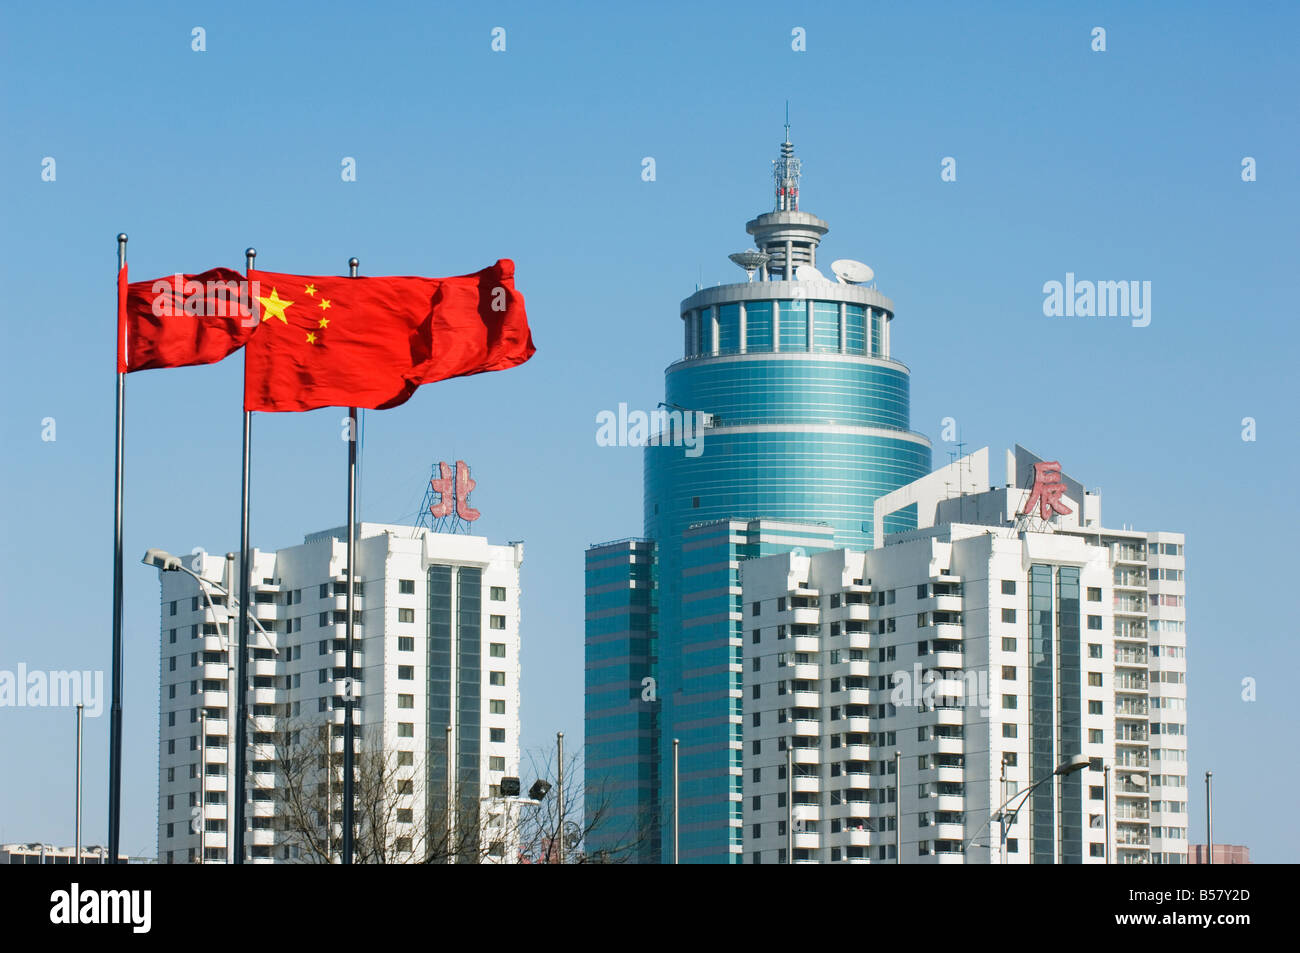 Chinese national flags in the CBD business district, Beijing, China, Asia - Stock Image